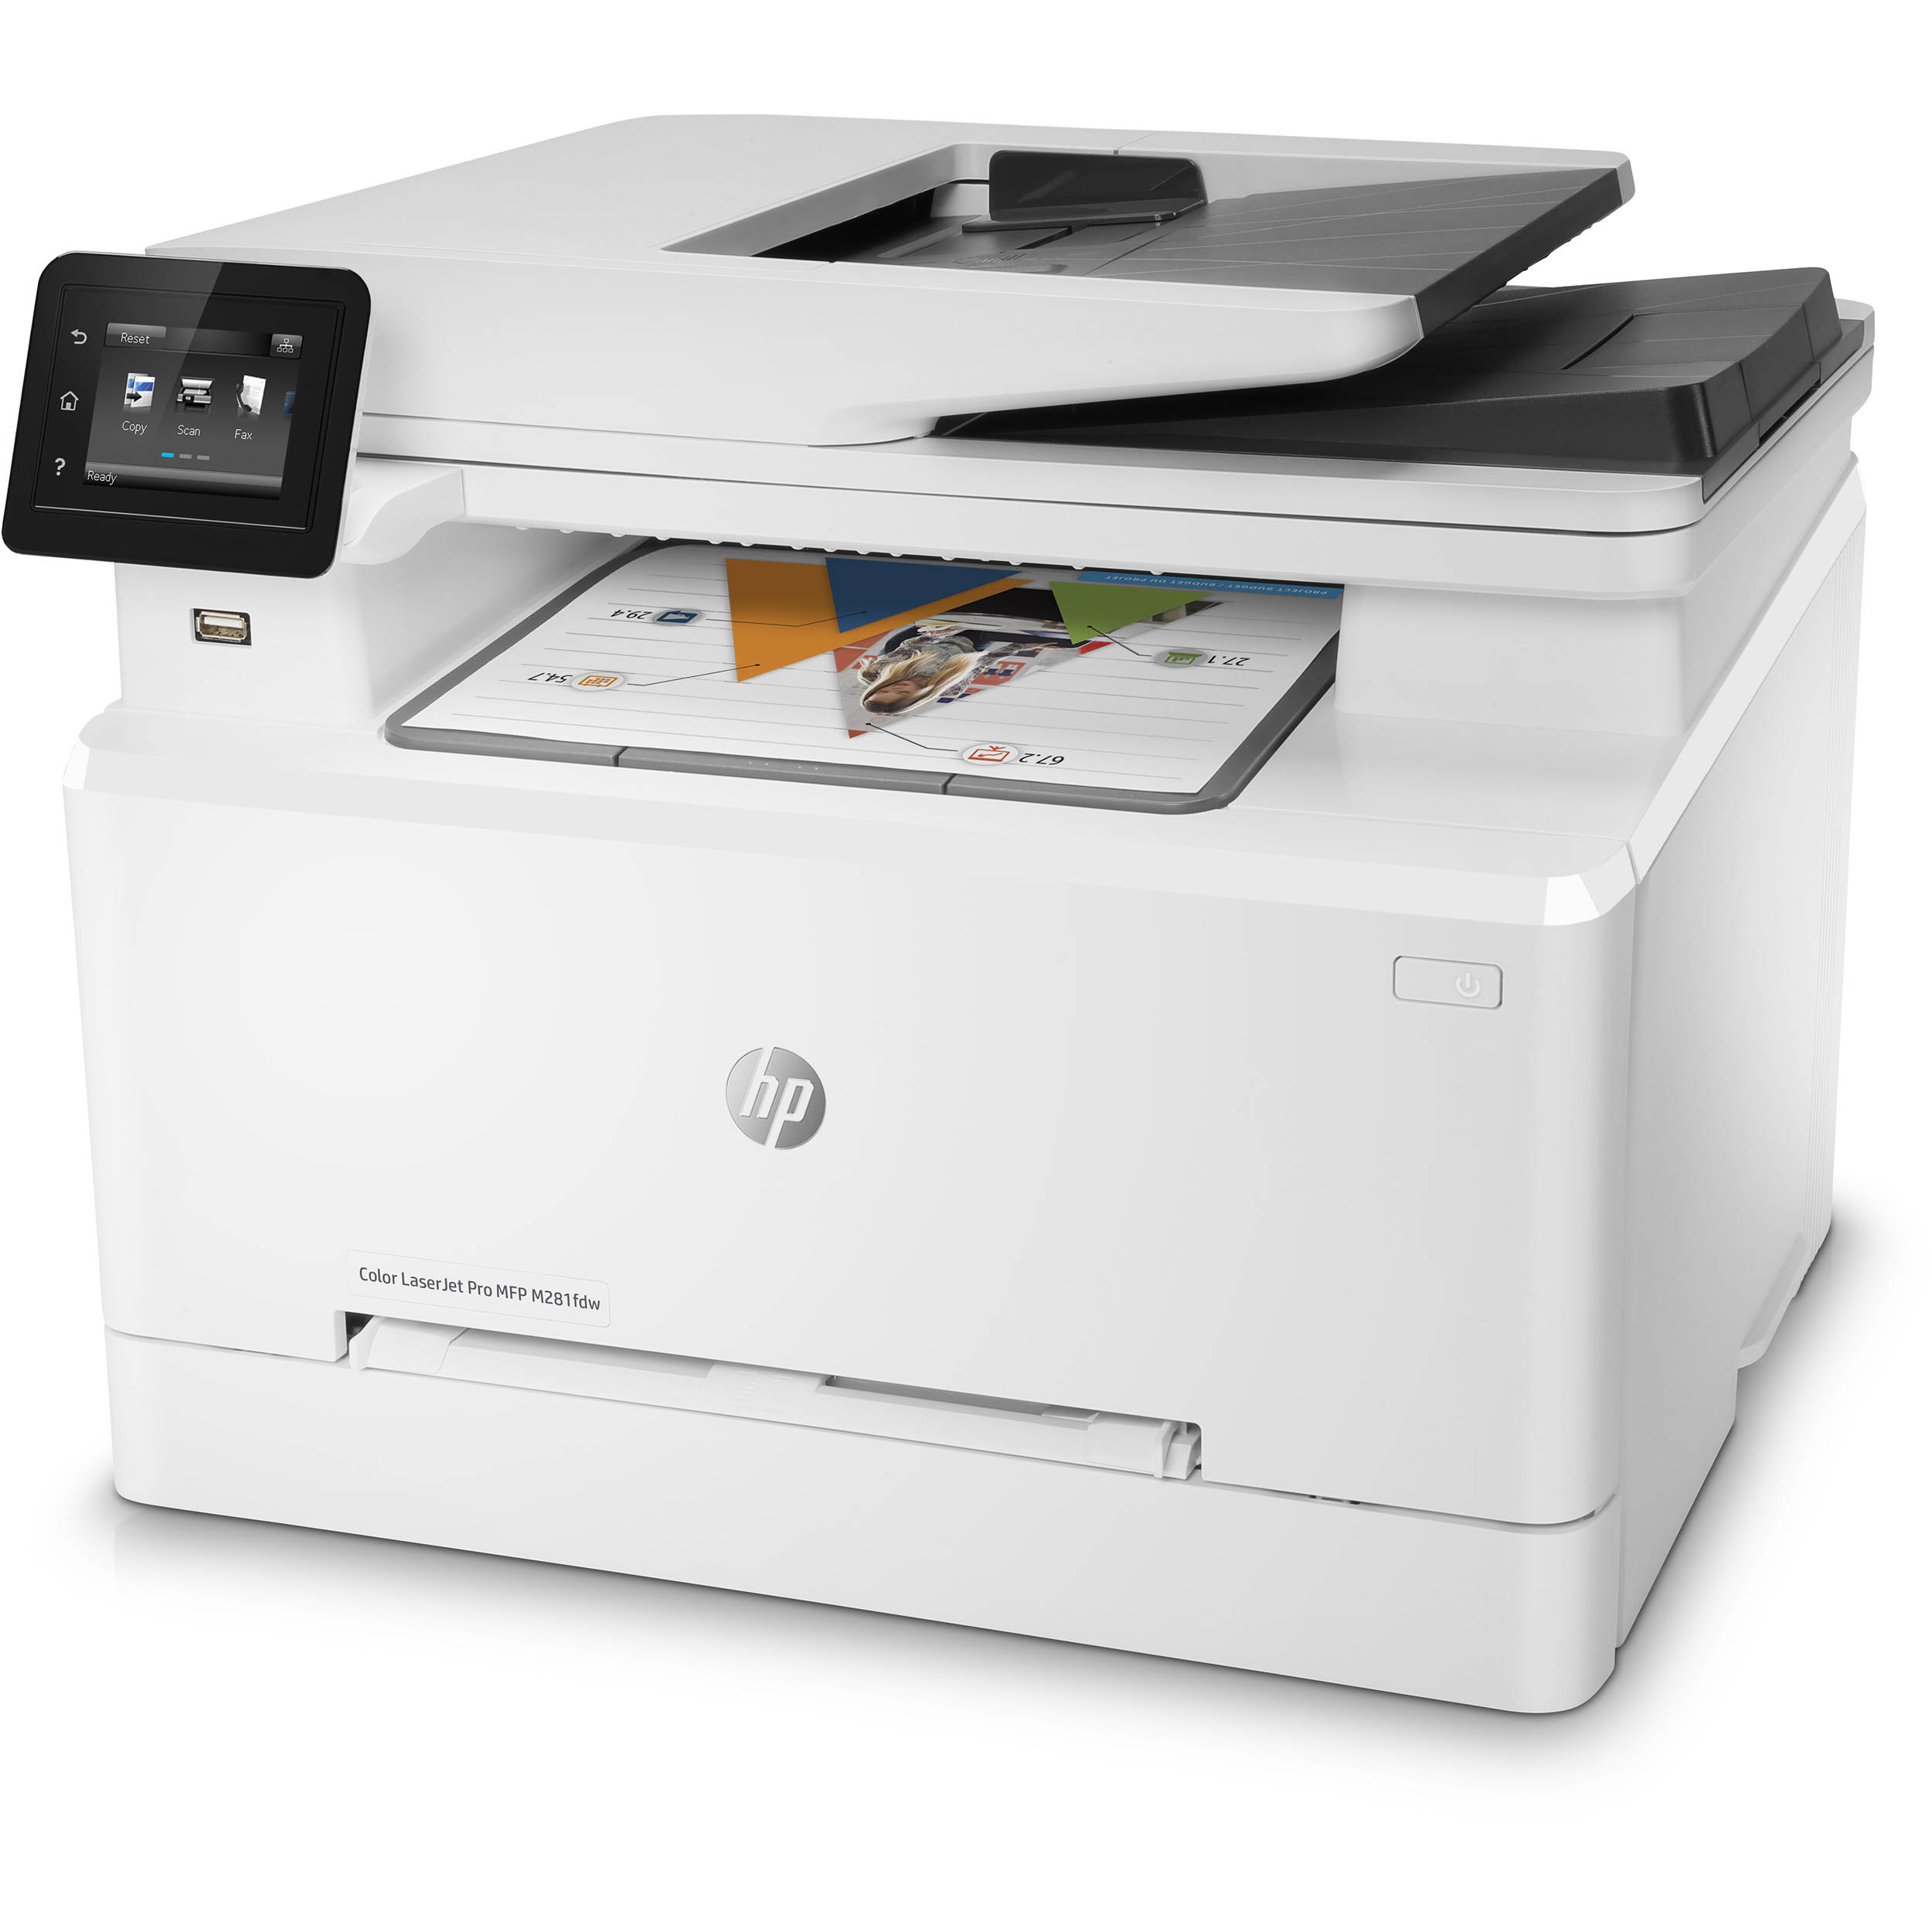 Hp Color Laserjet Pro M281fdw All In One Laser Printer Home Images Circuits Facebook Twitter Google